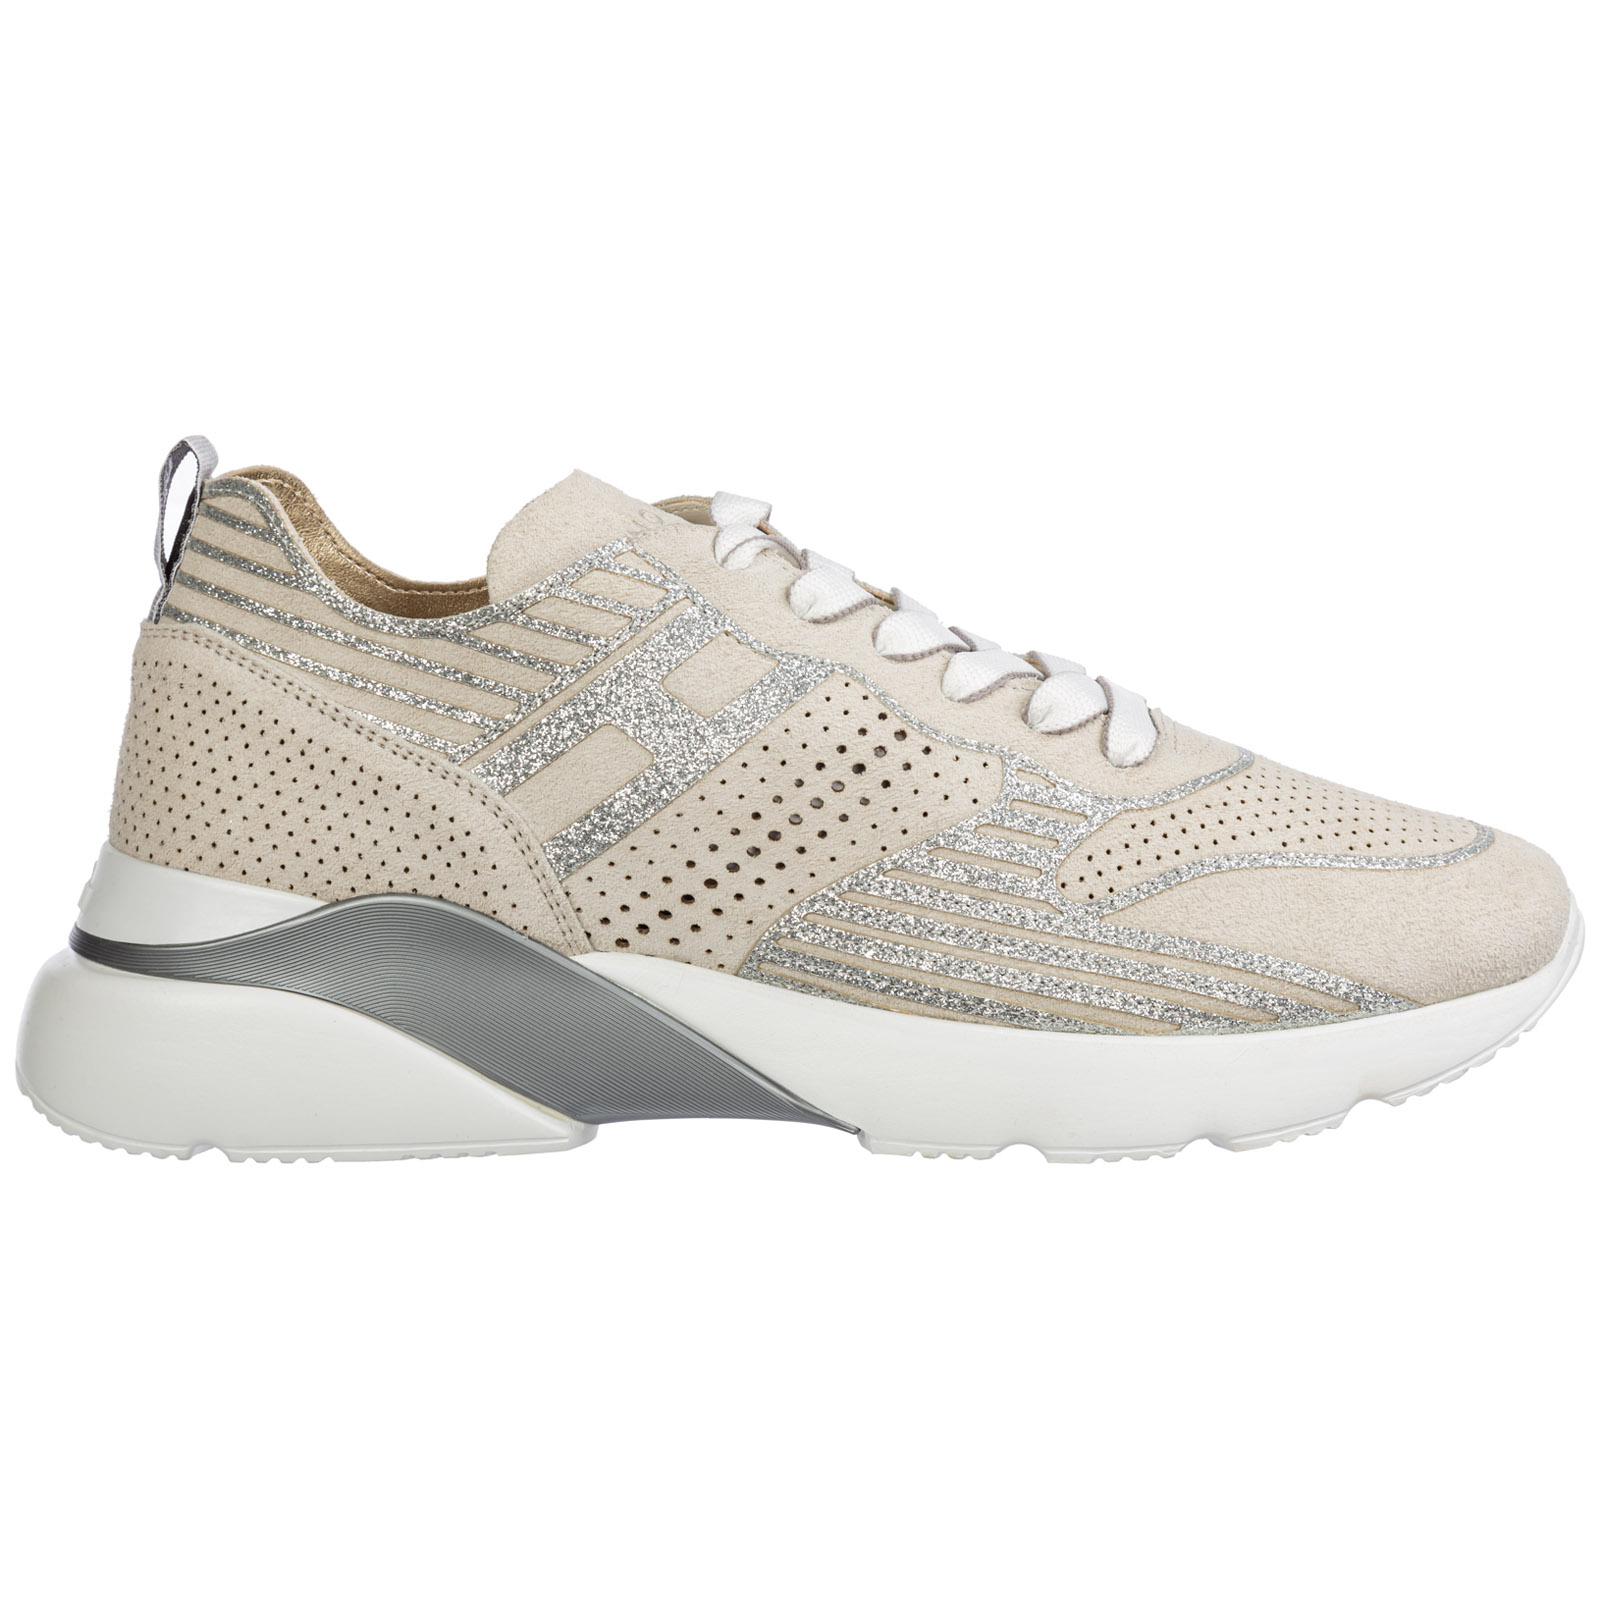 Hogan Women's Shoes Suede Trainers Sneakers Active One In Beige ...